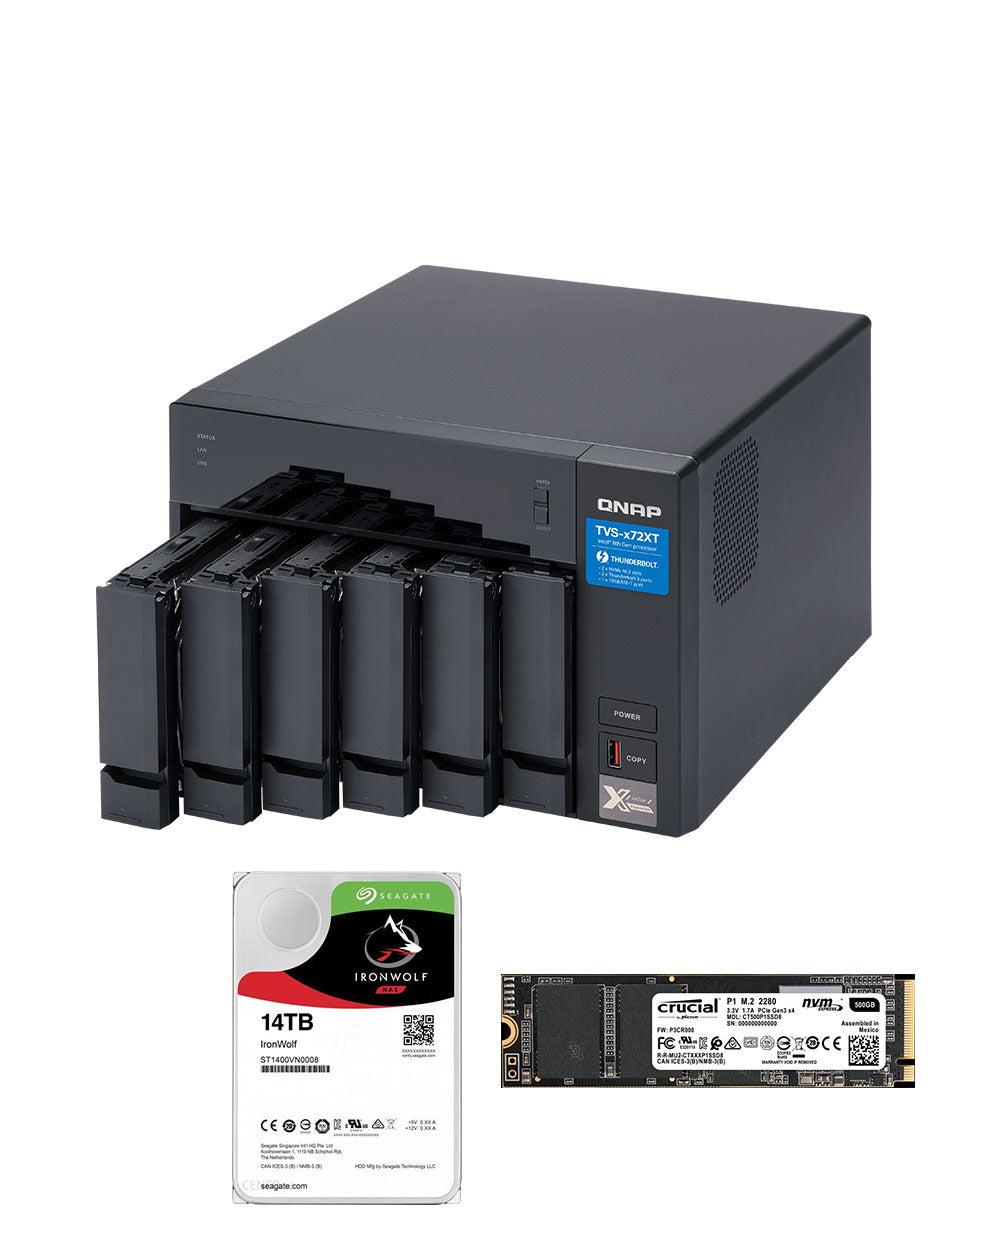 QNAP TVS-672XT-i3-8G with 14TB Ironwolf Drives and 2 x 500GB NVMe